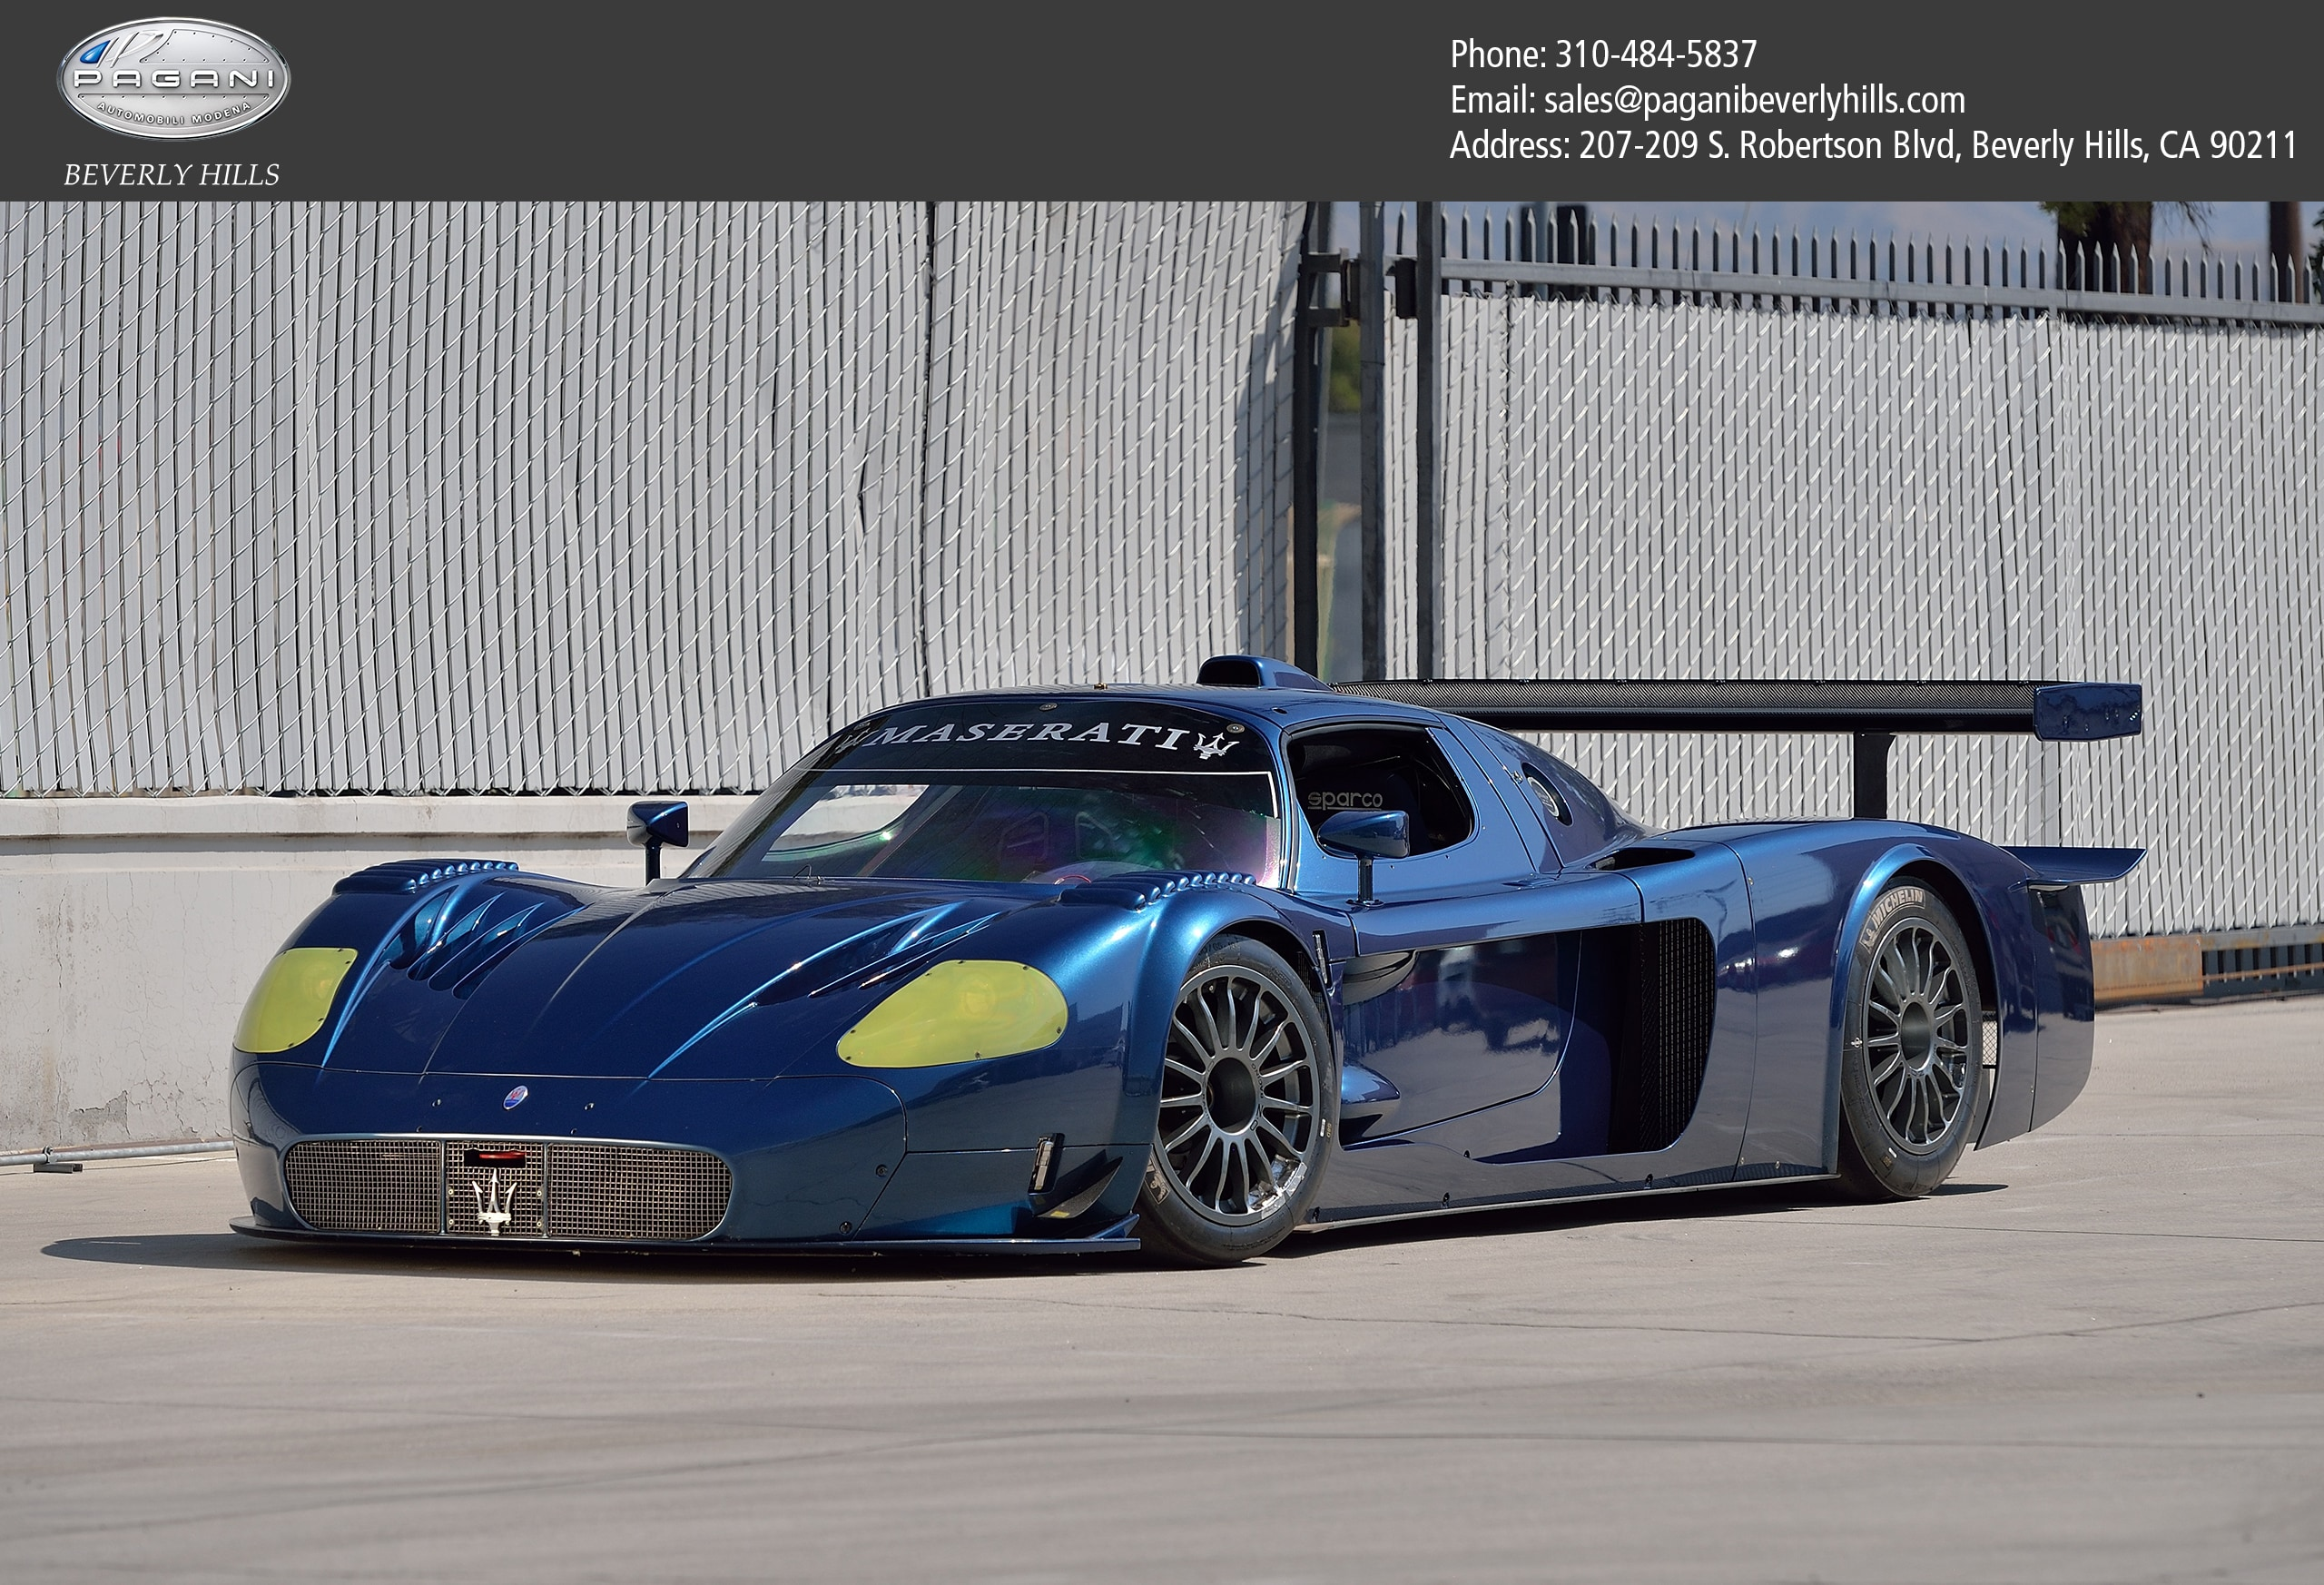 2007 Maserati MC12 Coupe